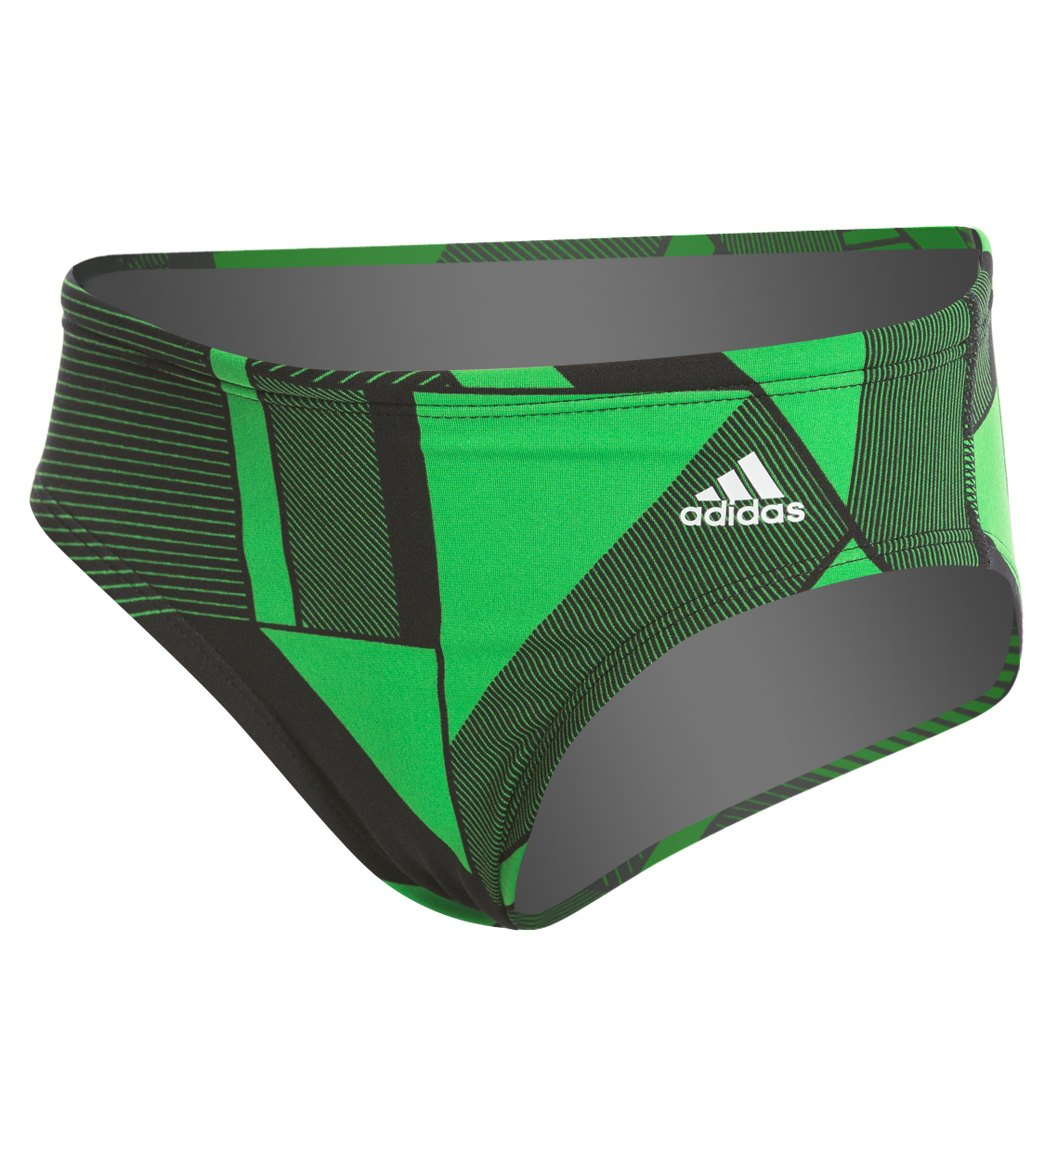 edace01370 Adidas Boys' Sport DNA Brief Swimsuit at SwimOutlet.com